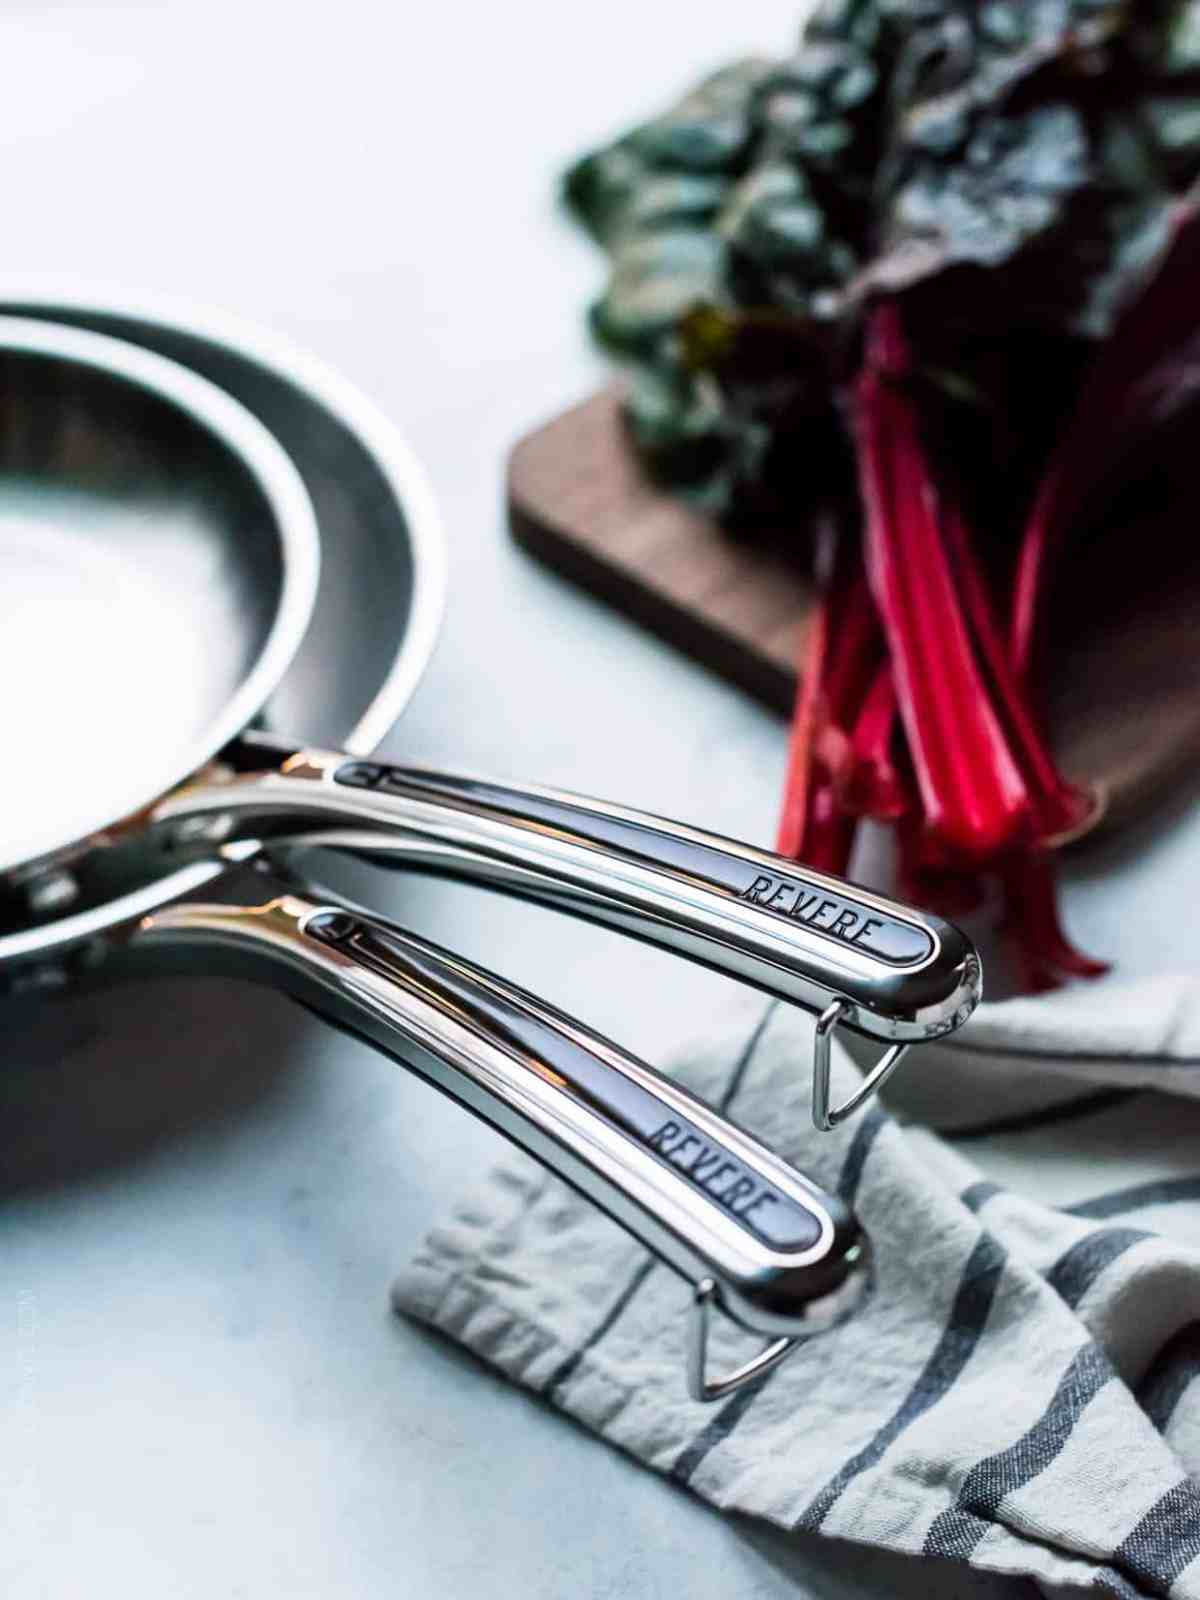 Close up view of Revere Cookware interlocking handles.